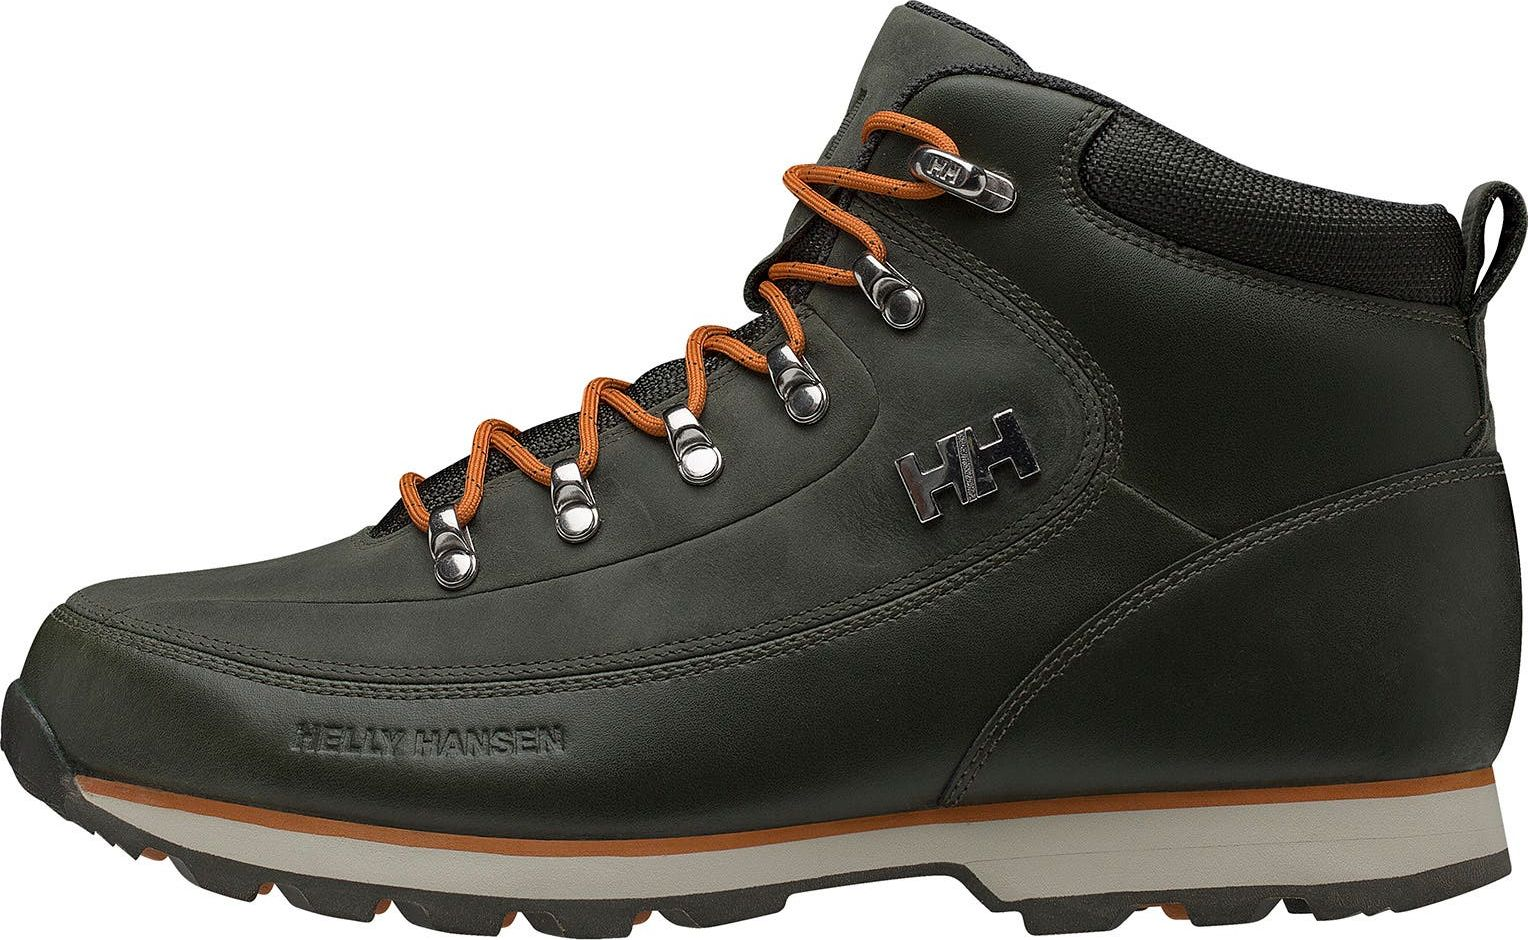 HELLY HANSEN The Forester Forest Night/Marmelade 43